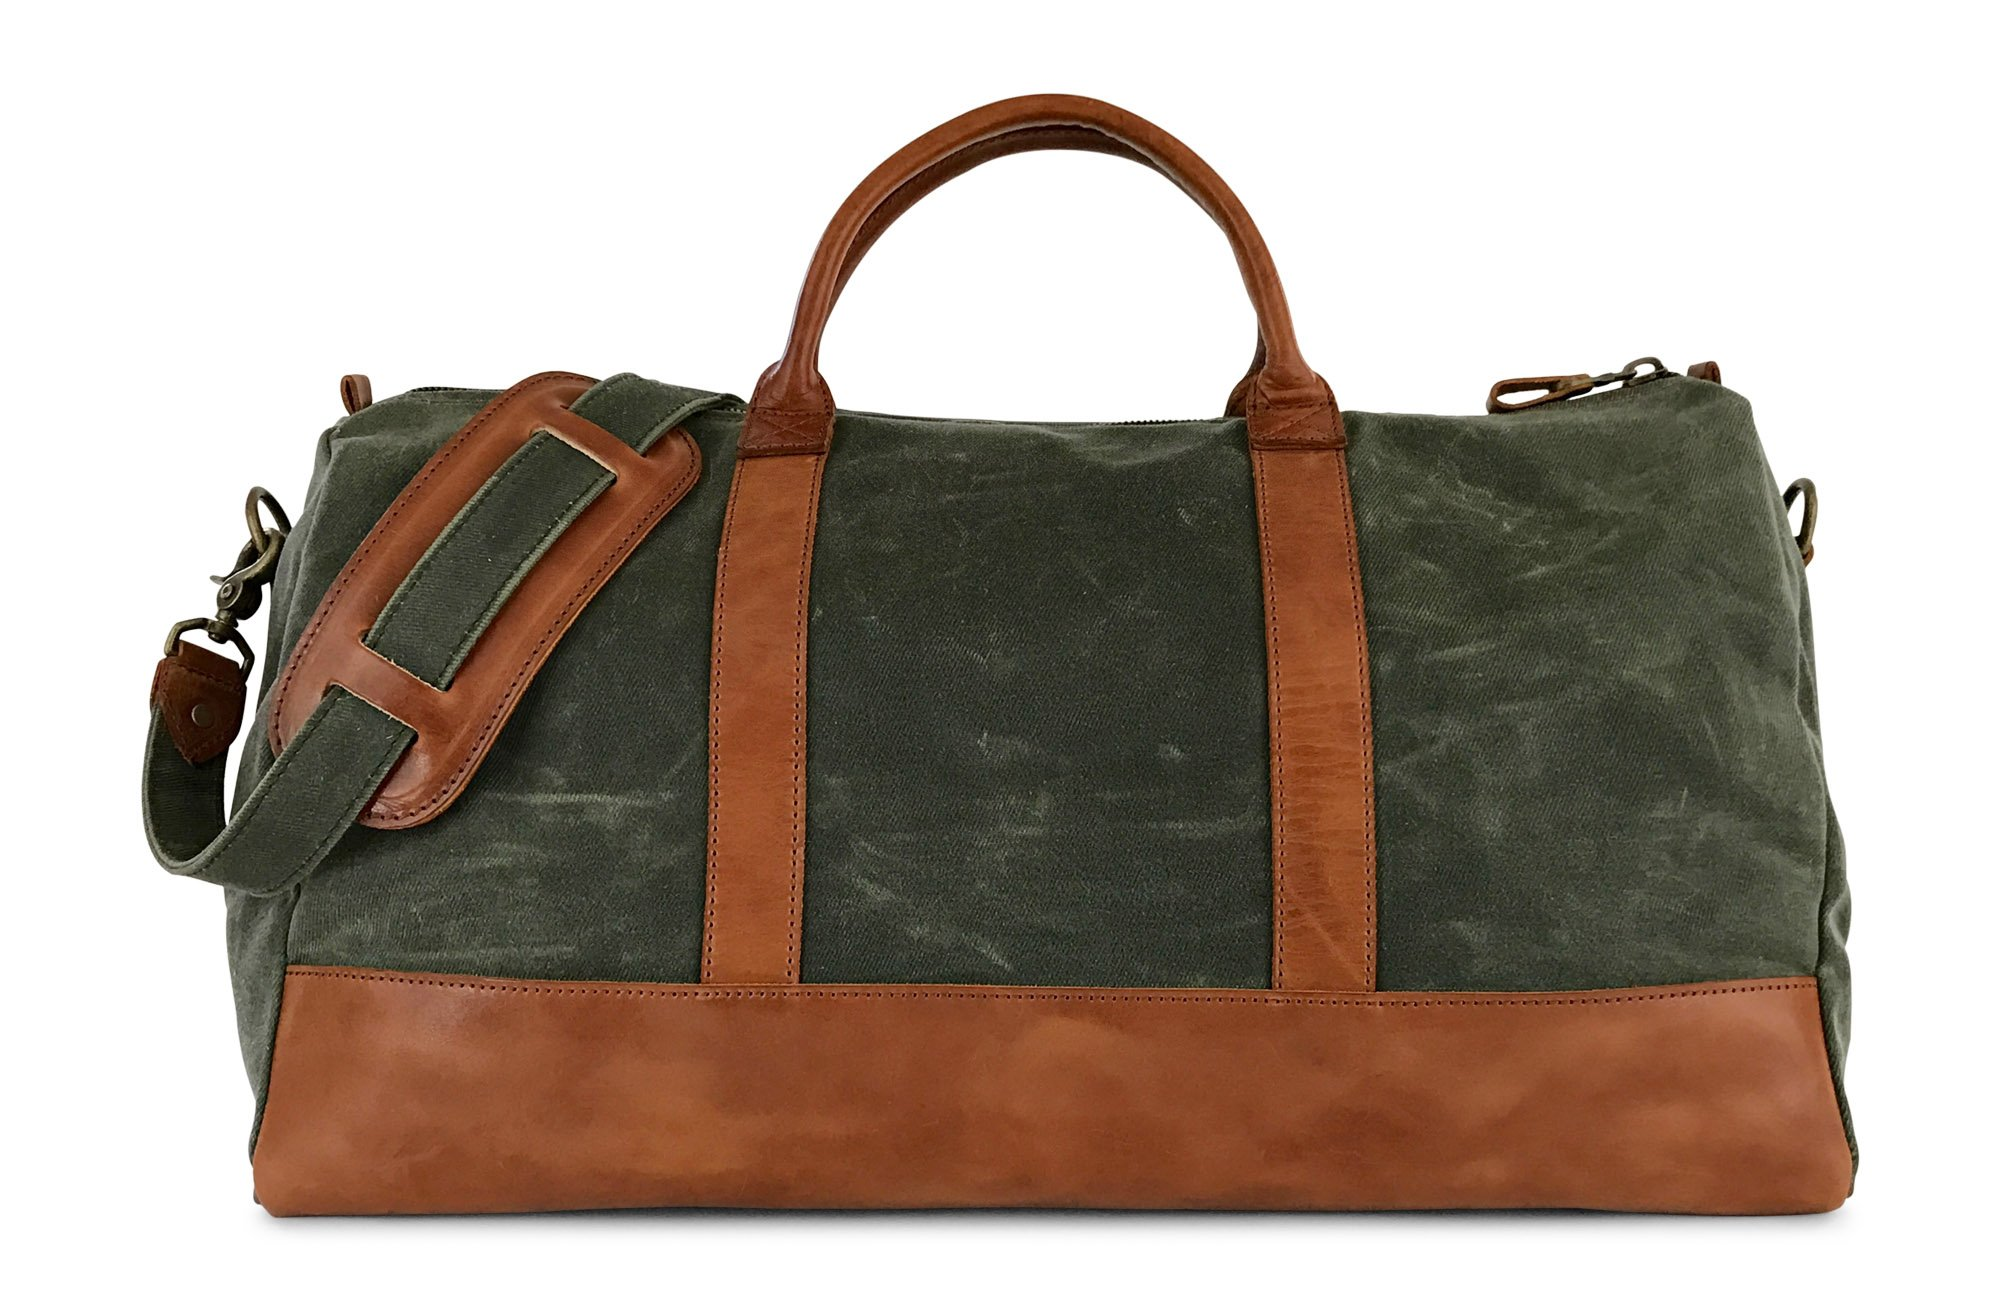 Waxed Canvas & Full Grain Leather Weekender Duffel Bag by Jackson Wayne (Saddle Tan/Alpine Green)